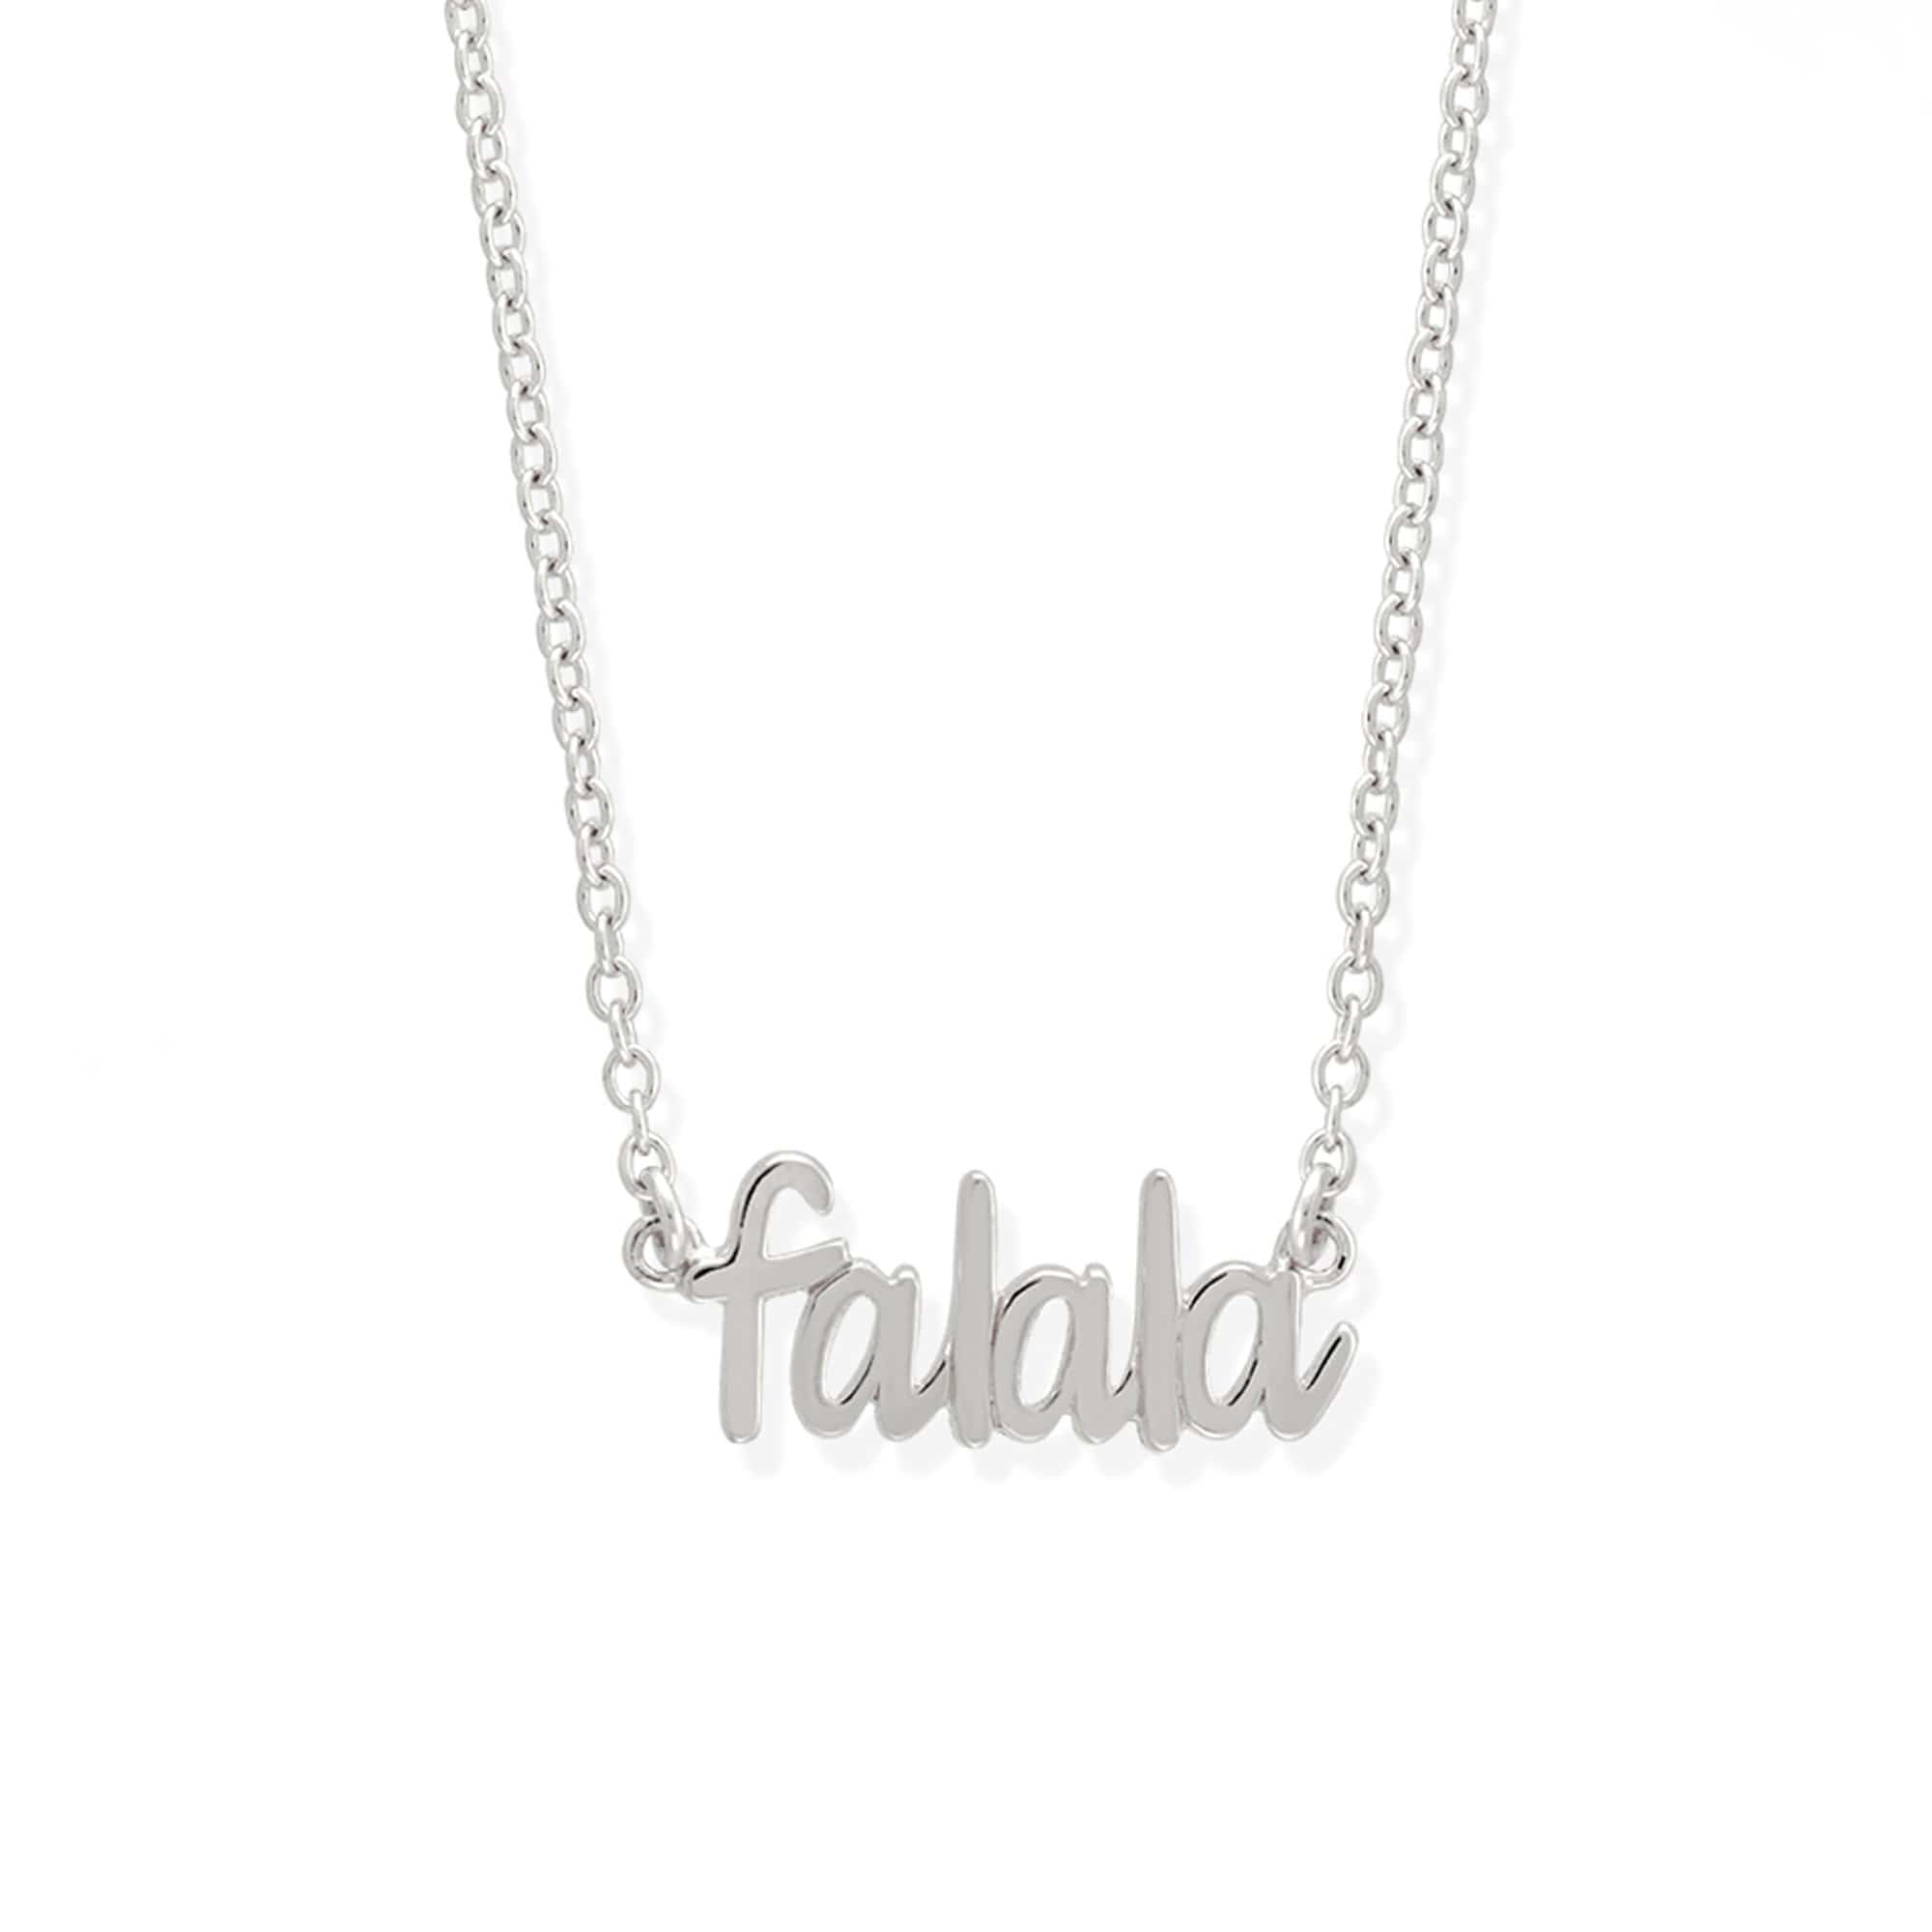 Falala Necklace